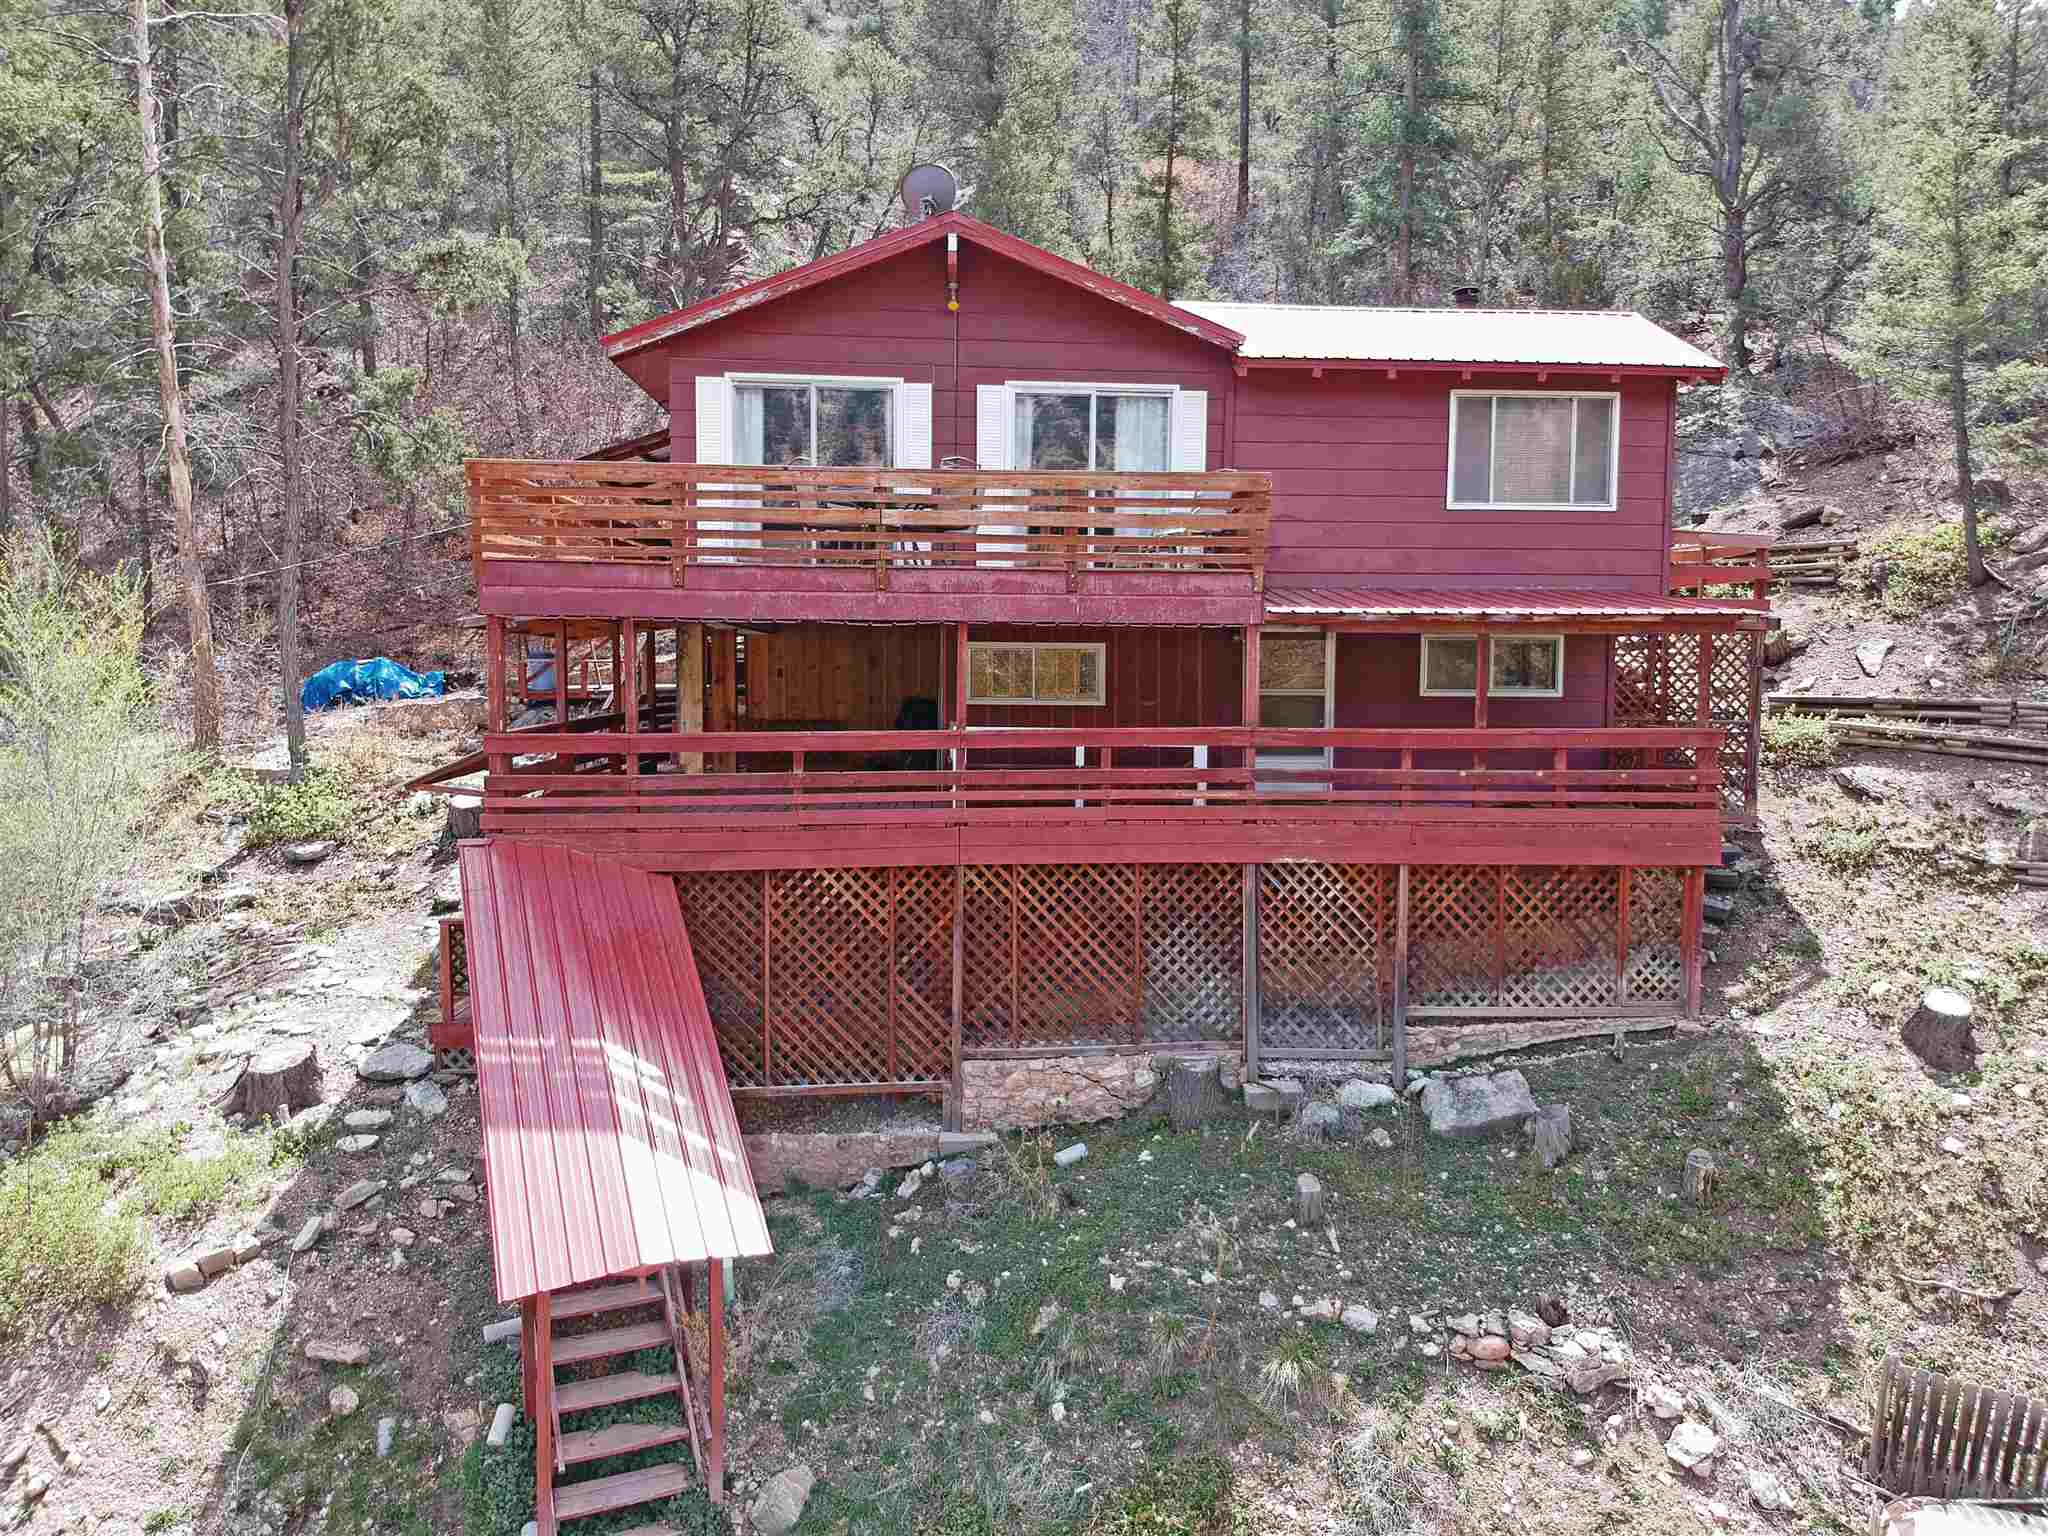 Do you ever wonder what makes the Jemez so appealing? Well step onto one of these wrap-around decks at this beautiful home and you will know instantly! Tucked away in a quiet area near Jemez Springs is this great getaway, within walking distance to the Jemez River and many other outdoor adventures. The living areas are warm and inviting, with a vaulted wooden ceiling with exposed beams, a lovely fireplace, wood burning stove and sliding glass doors that lead out onto one of the two decks with breathtaking views of Virgin Mesa. Cozy kitchen and open concept dining area. Two bedrooms on the main floor and two more downstairs in the finished walk out basement, with a bathroom on each floor. Don't wait on this one, schedule your showing today.